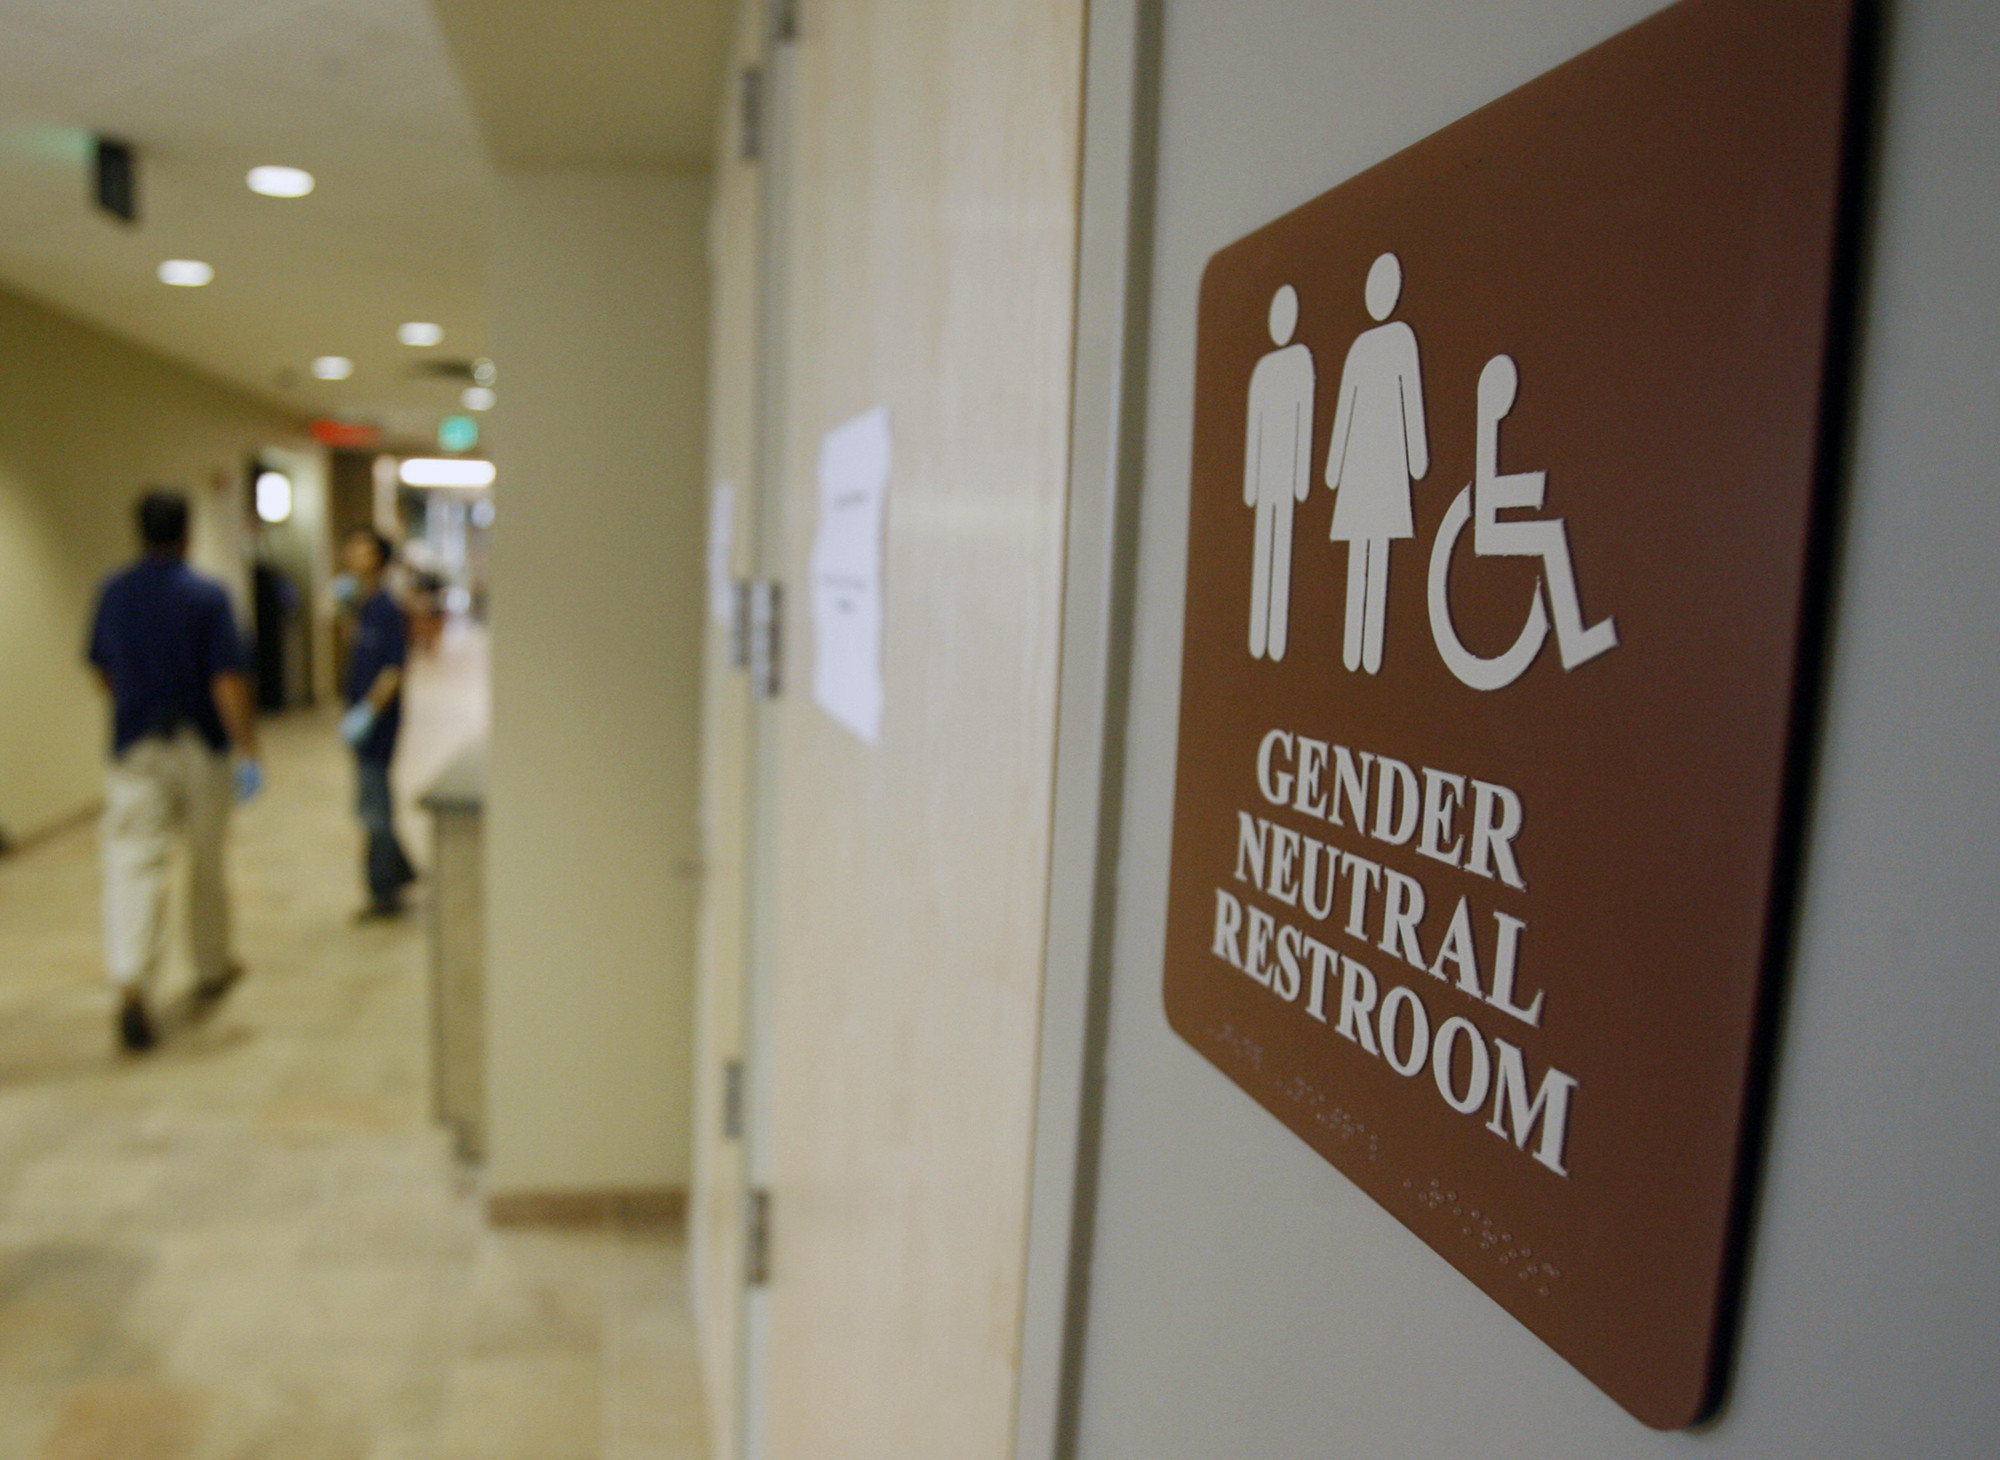 'Religious freedom' laws are about the freedom to discriminate